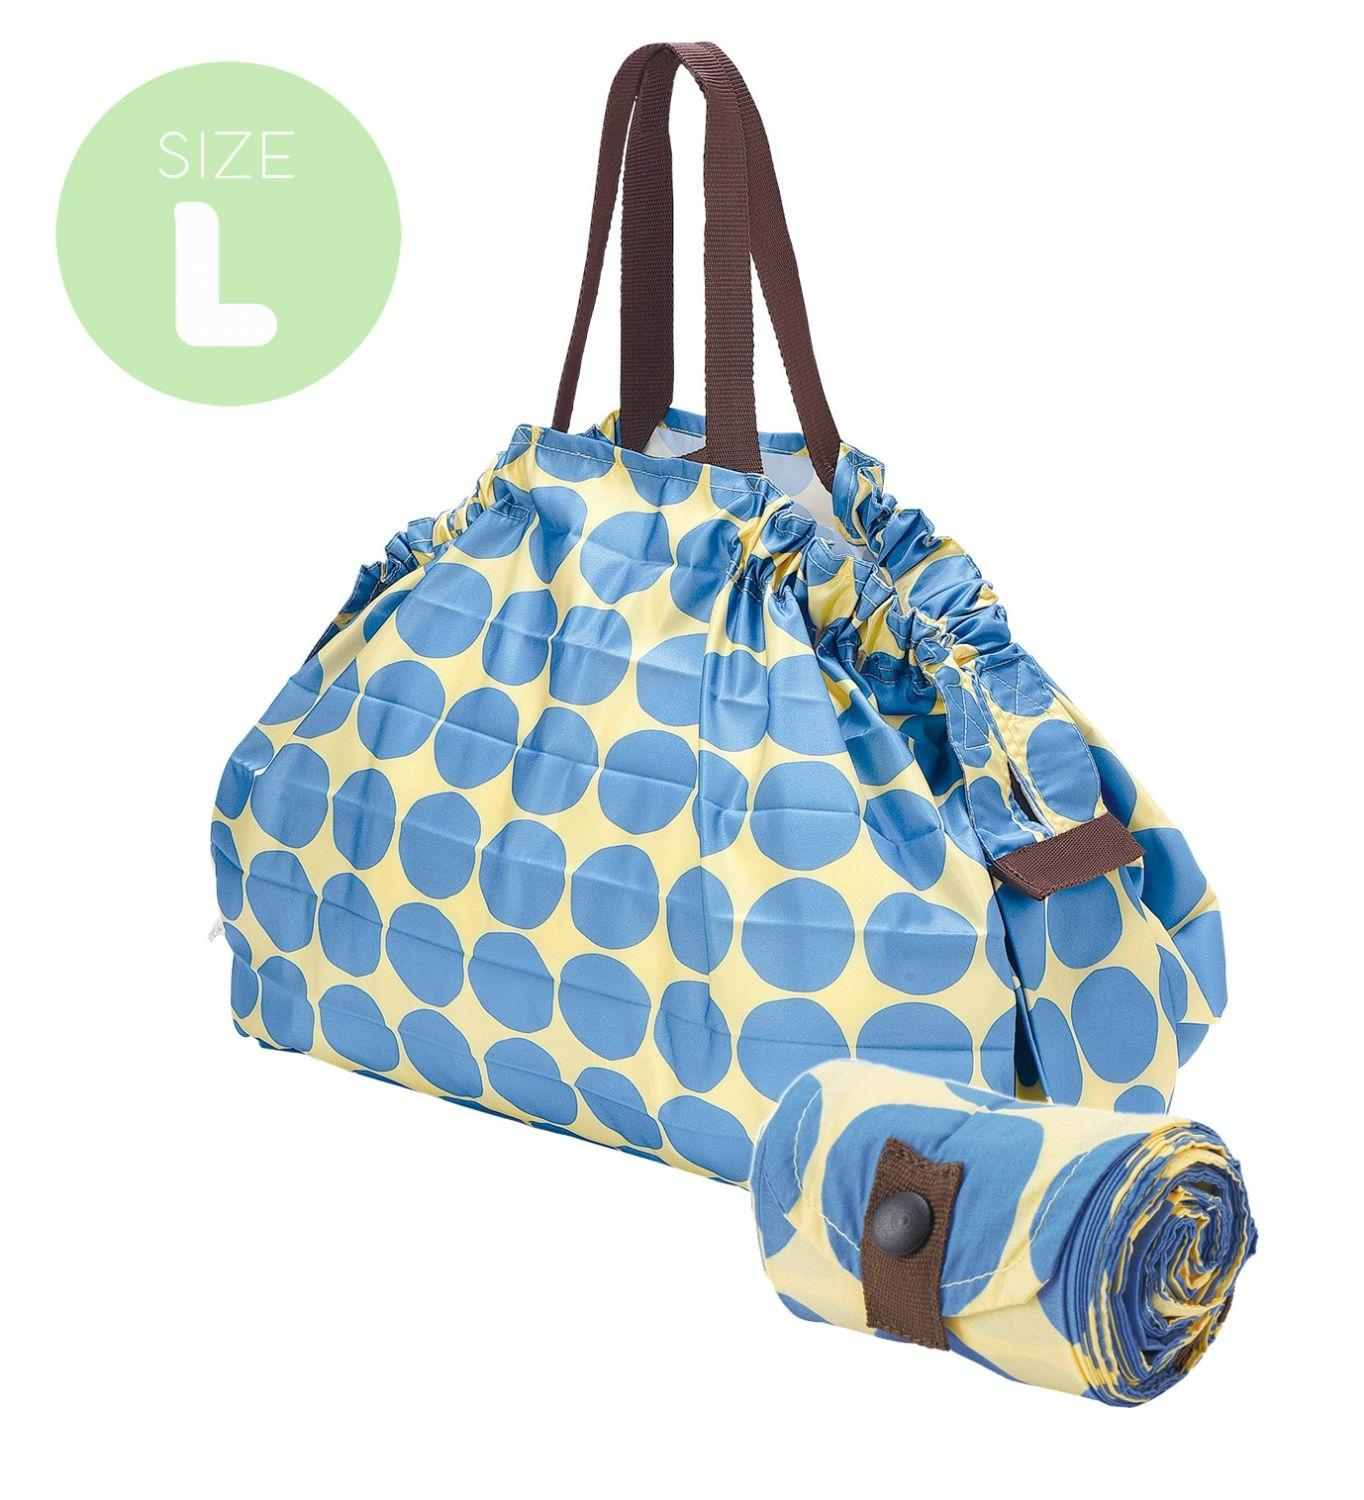 Shupatto Compact Bag - Tote Large - Dot